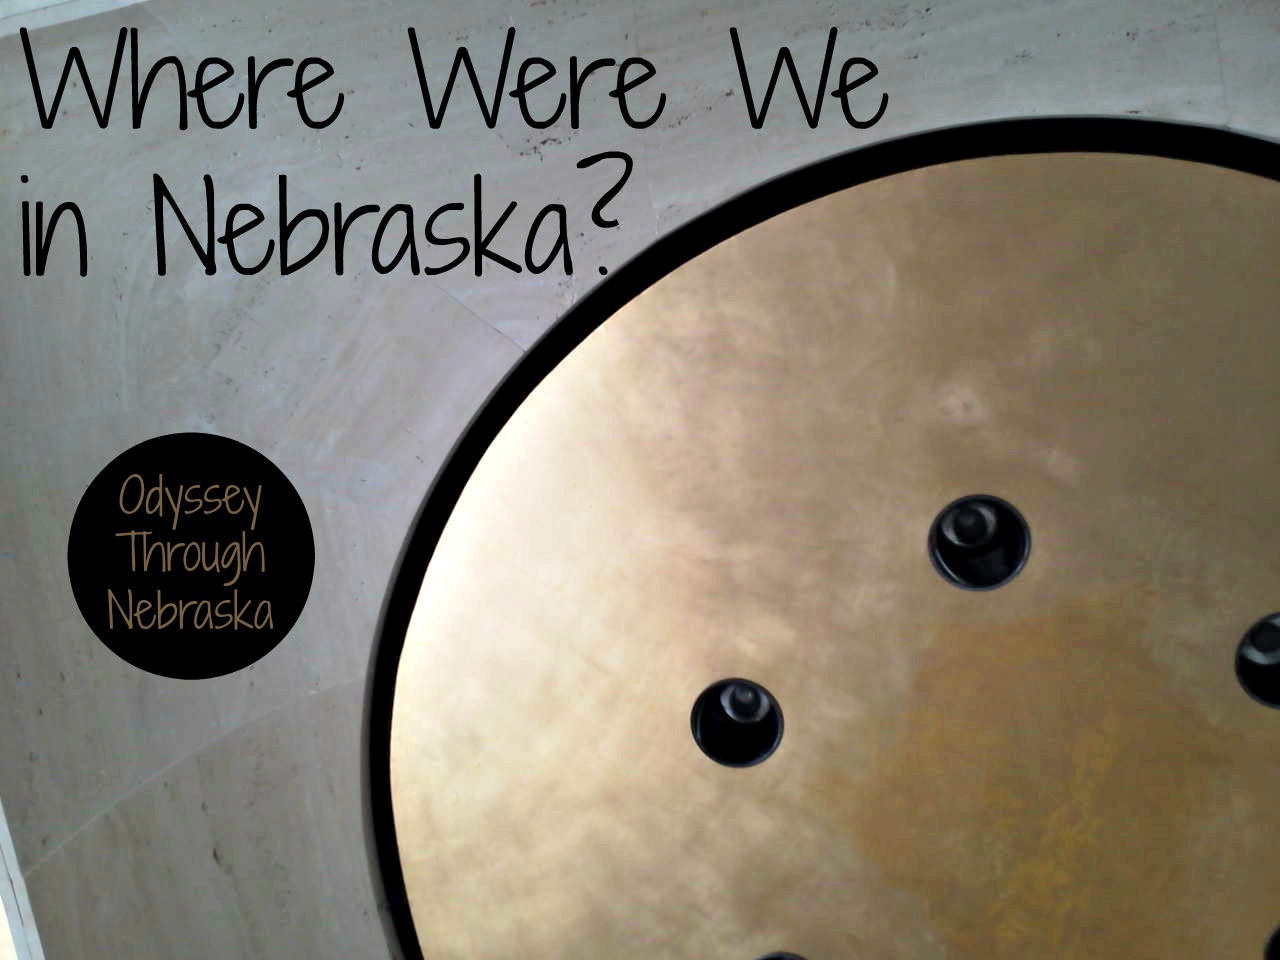 This 9-25-13 Wordless post features a place in Nebraska